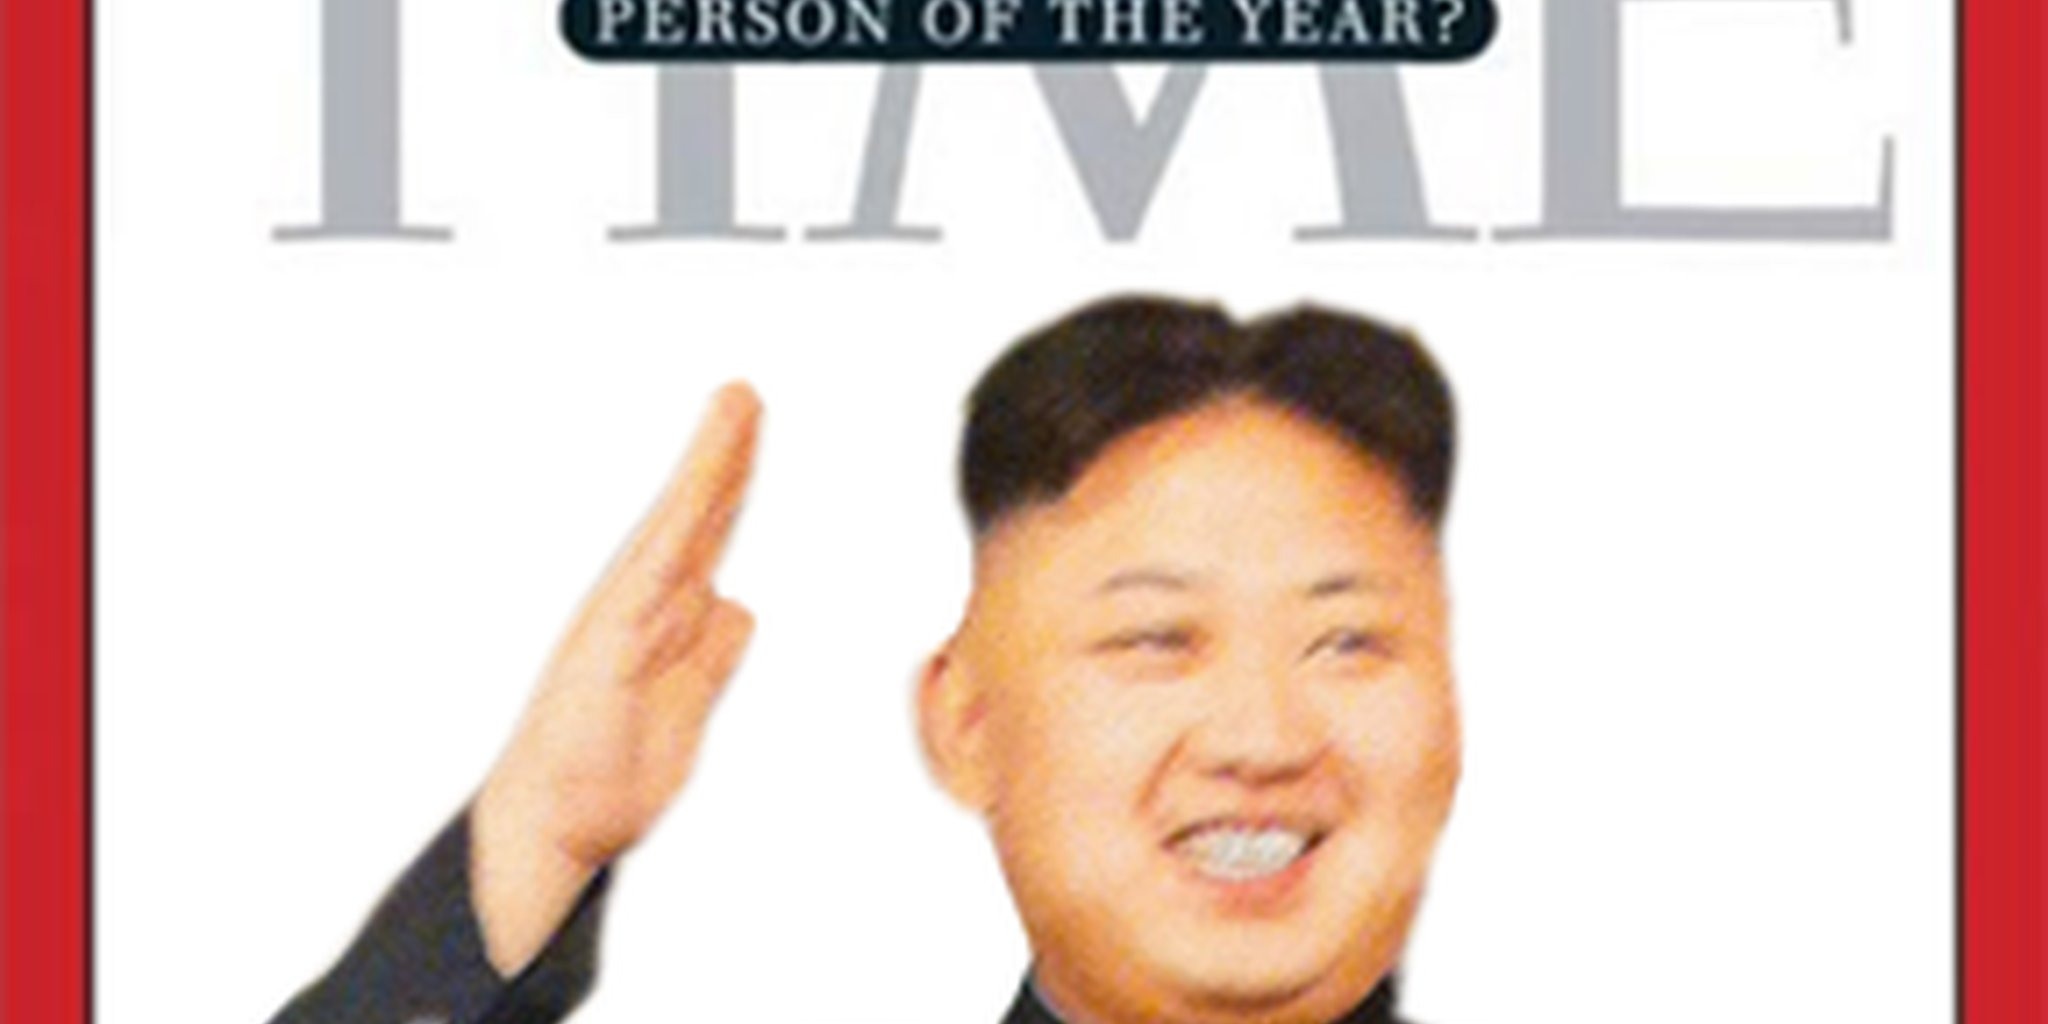 personoftheyearcover2